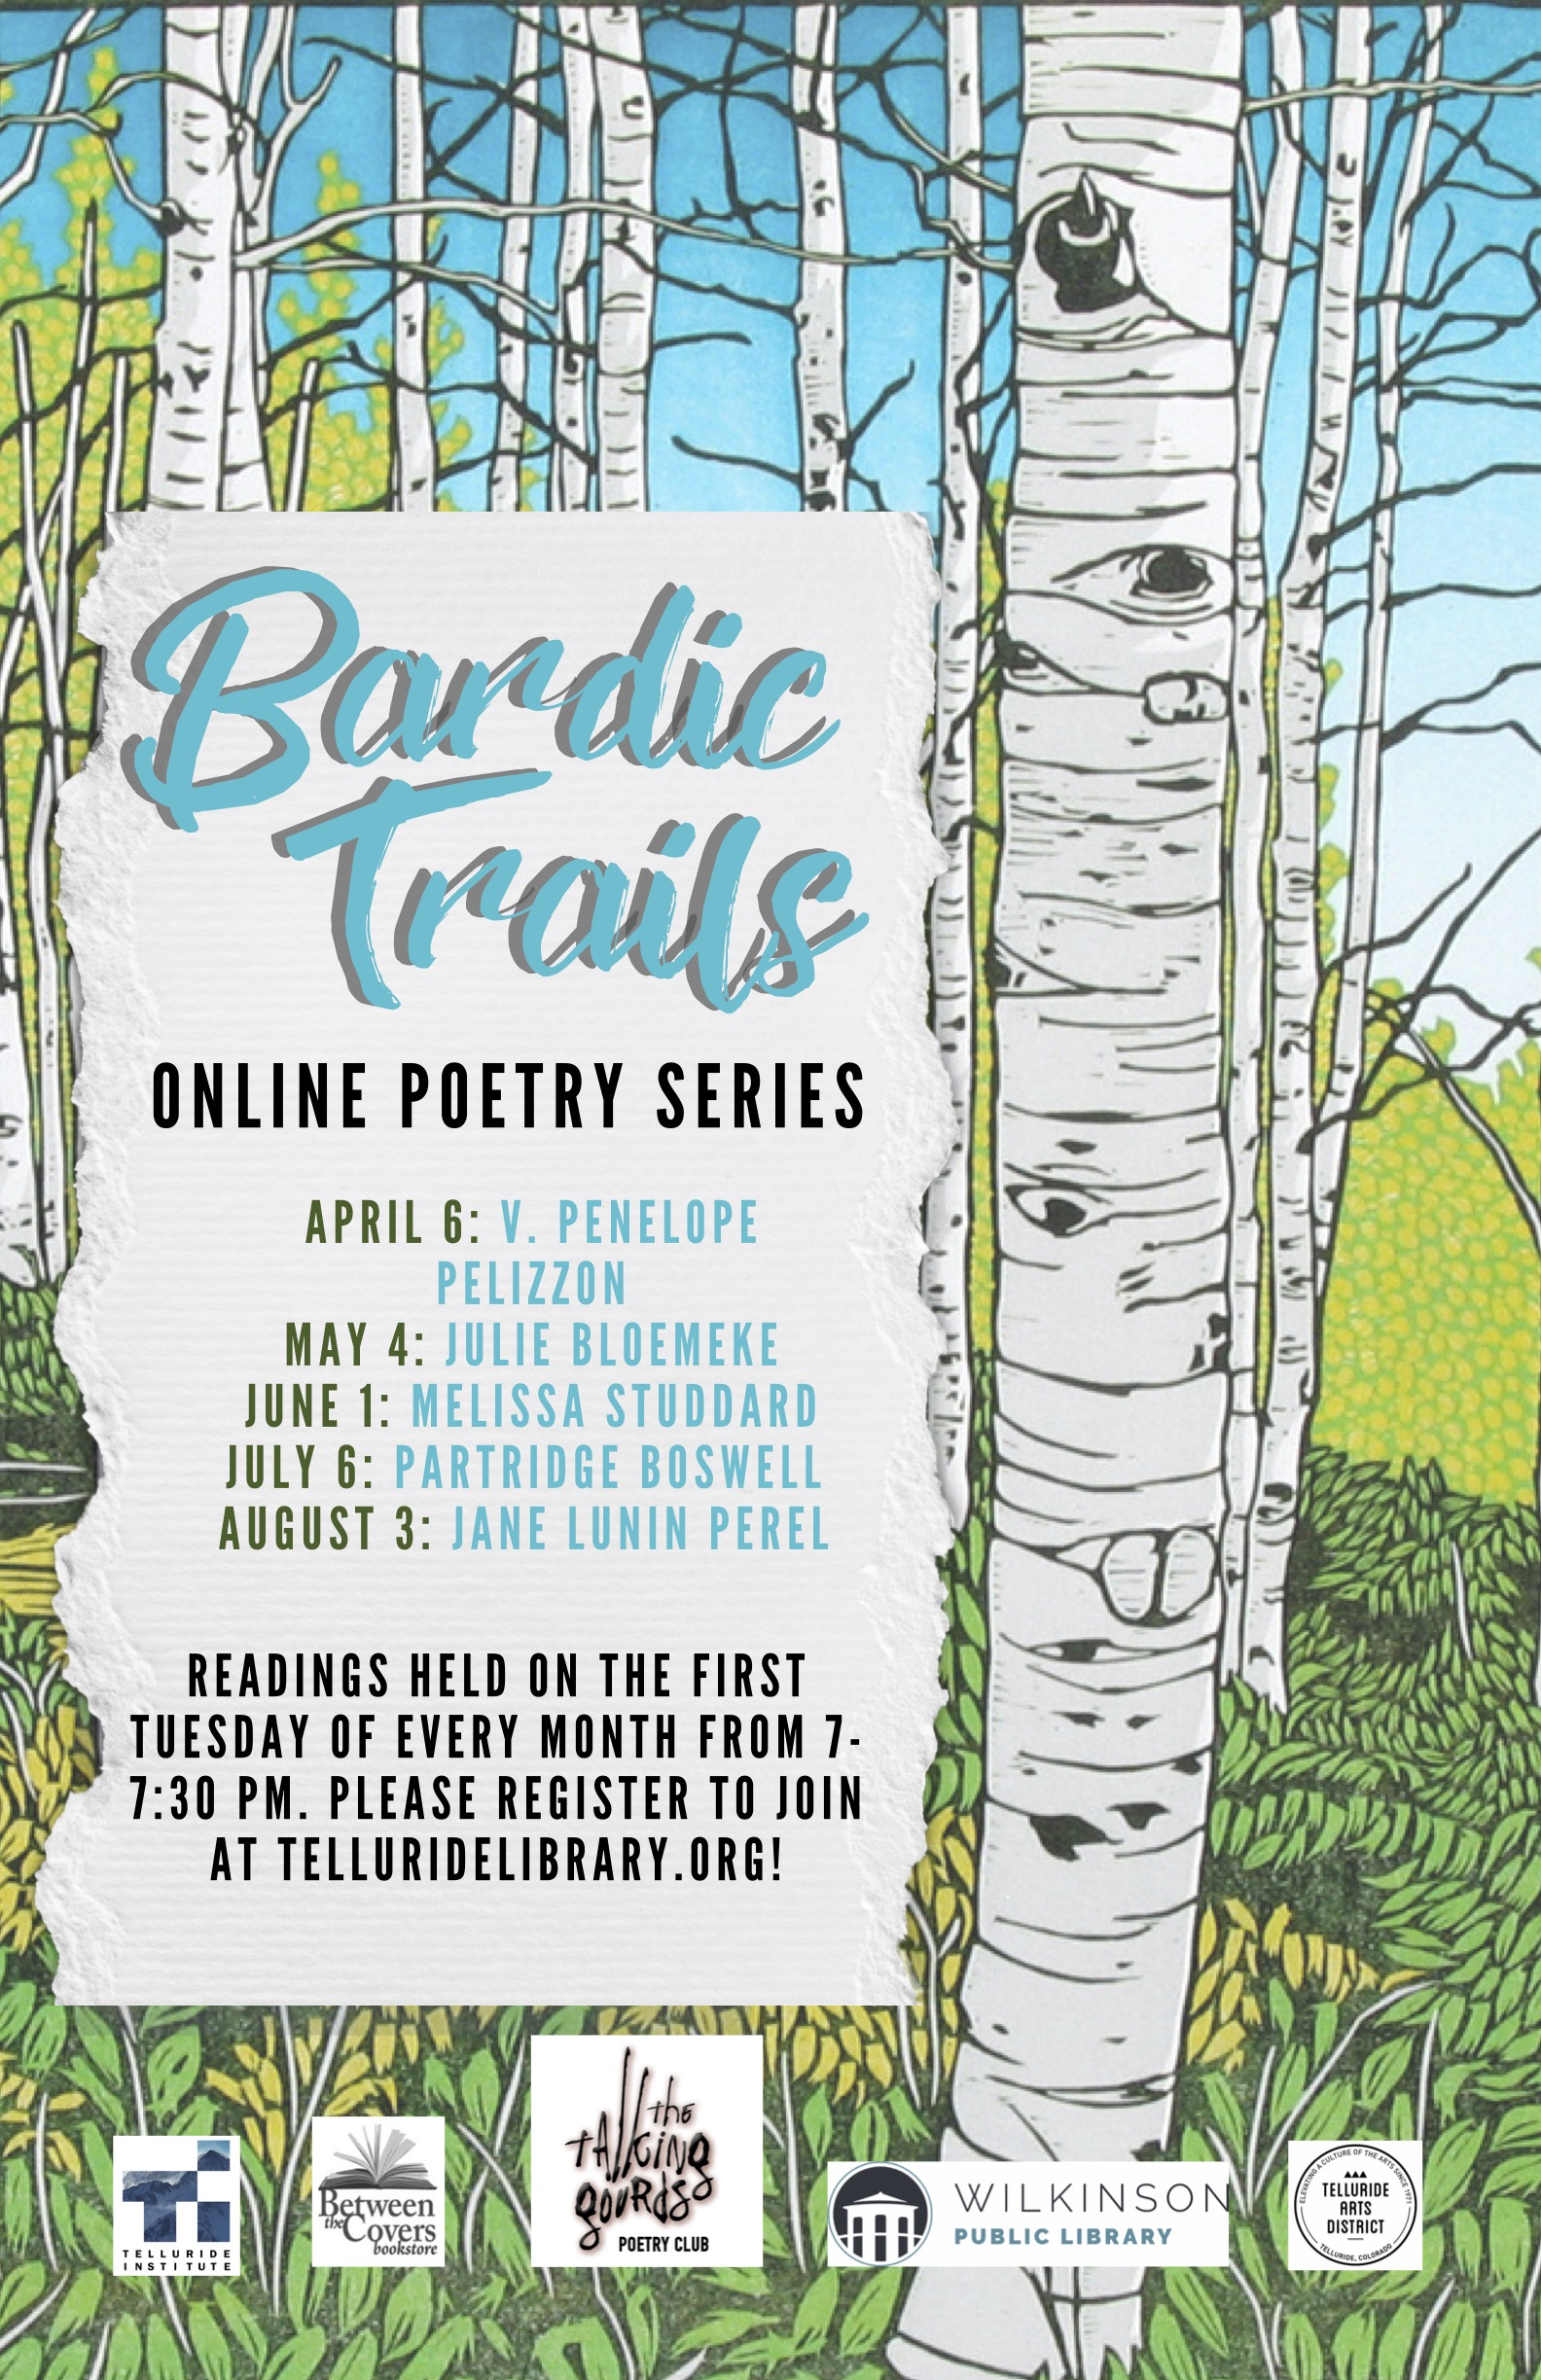 April Bardic Trails Features Fischer Prize Runner Up V. Penelope Pelizzon